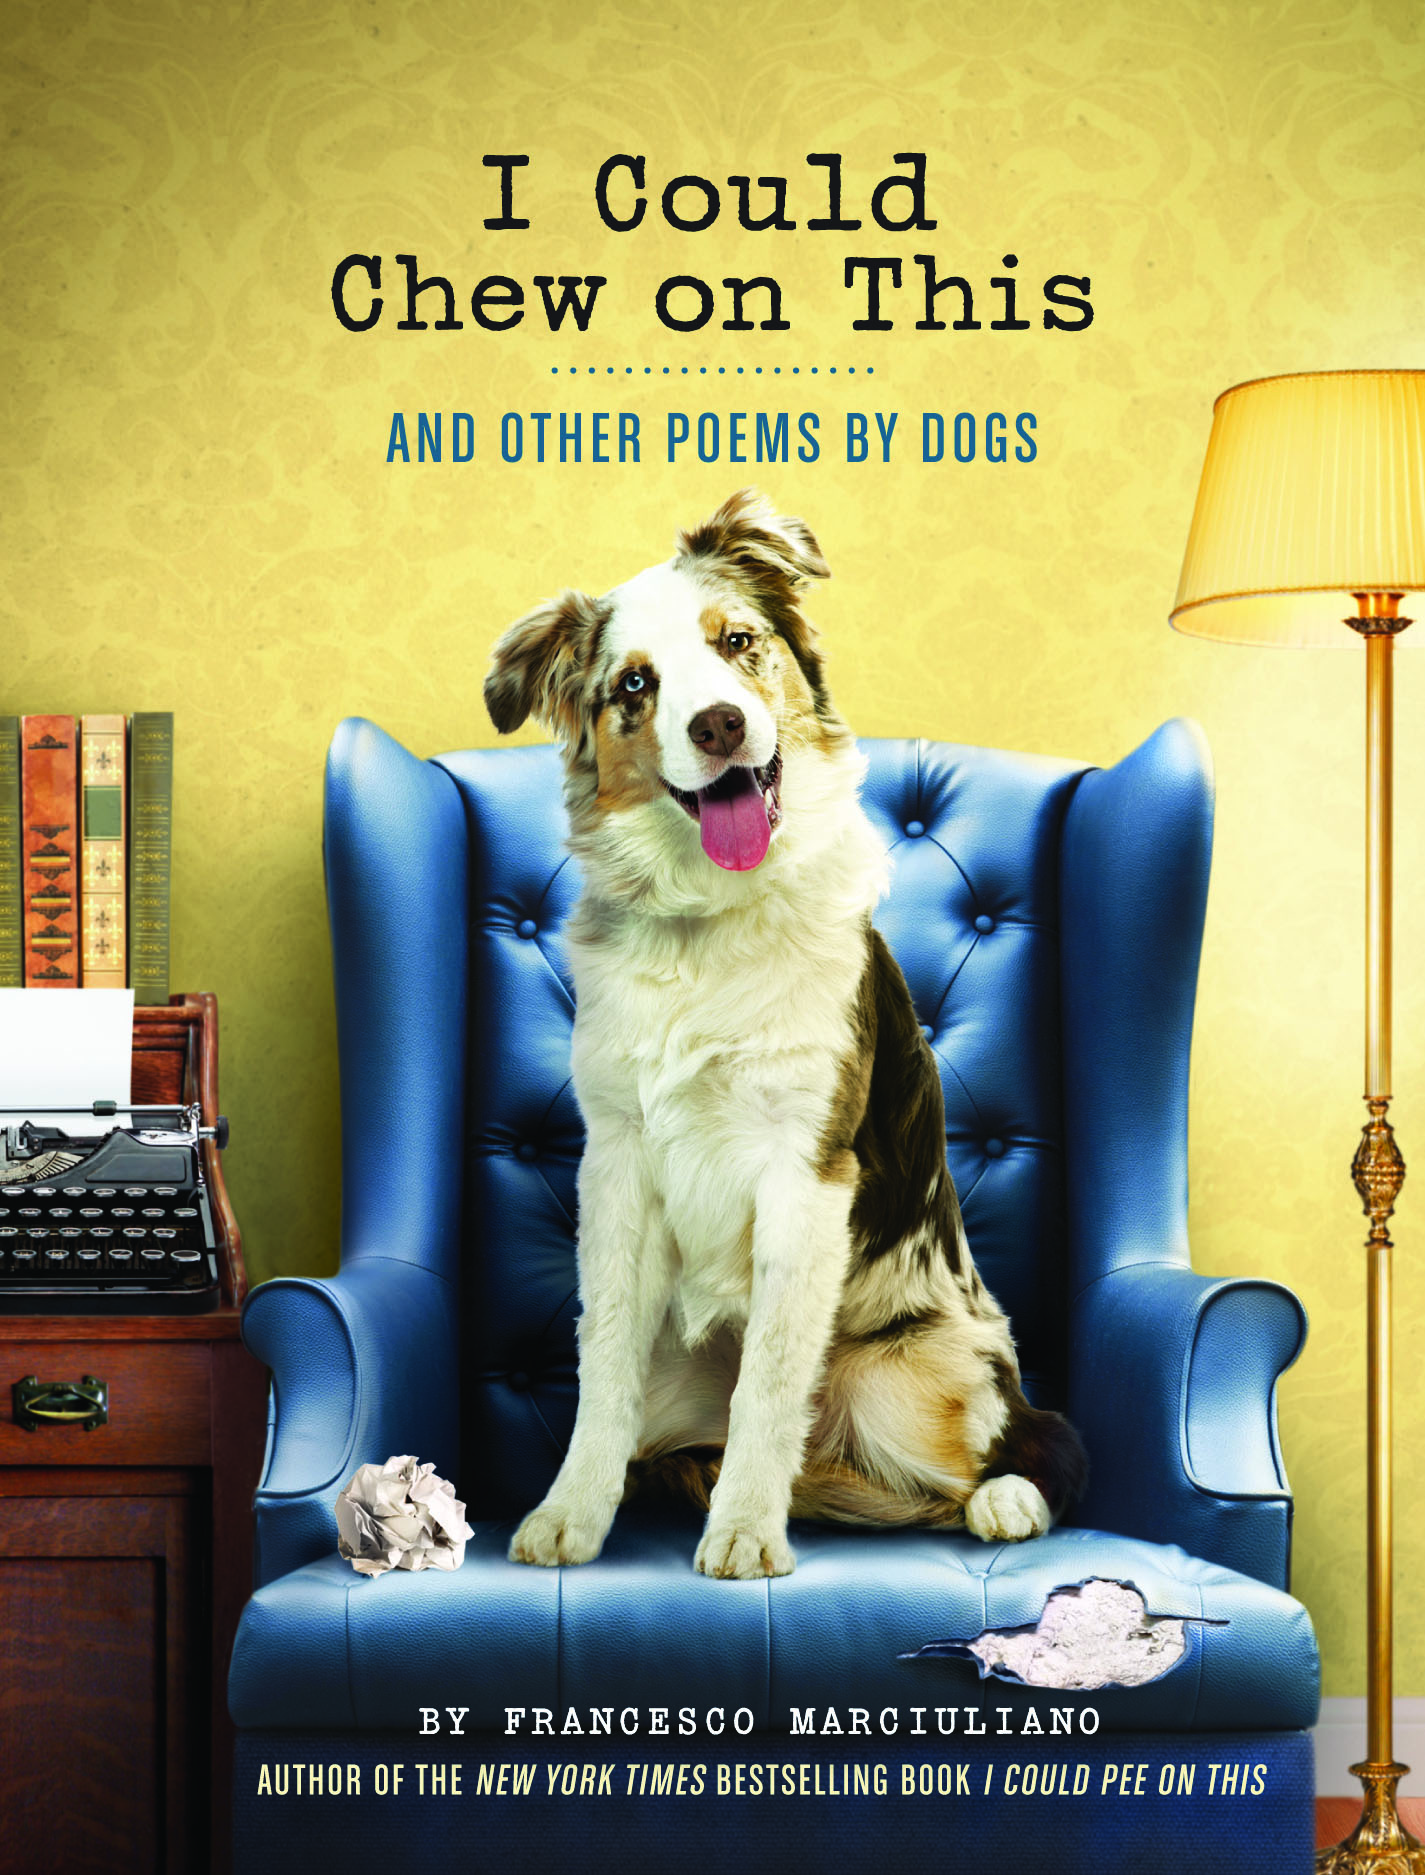 Book Launch: I Could Chew on This by Francesco Marciuliano